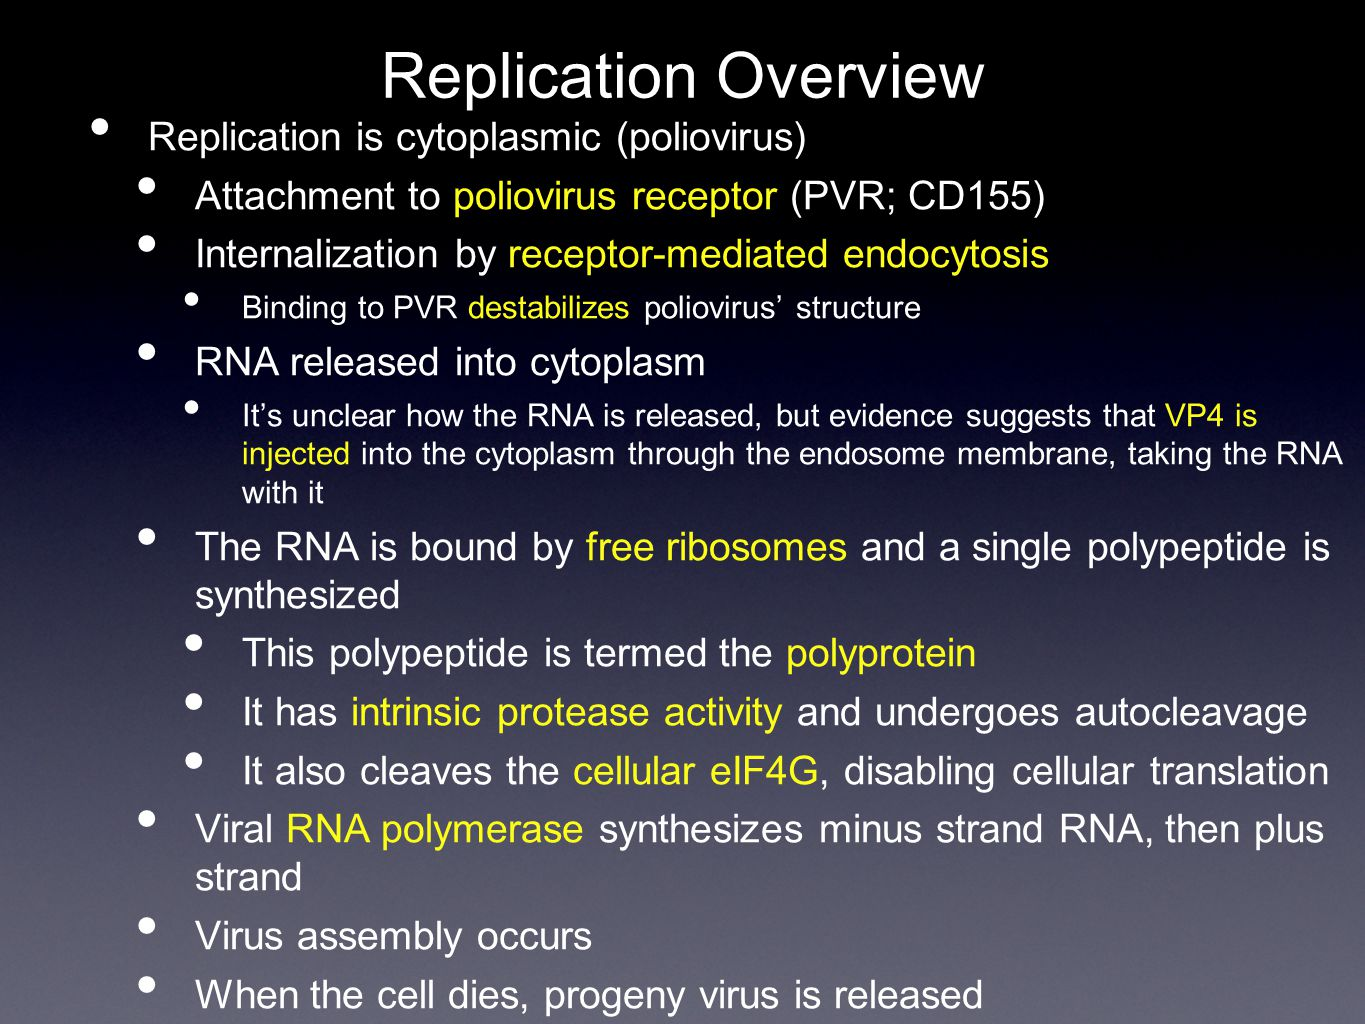 Replication Overview Replication is cytoplasmic (poliovirus) Attachment to poliovirus receptor (PVR; CD155) Internalization by receptor-mediated endocytosis Binding to PVR destabilizes poliovirus' structure RNA released into cytoplasm It's unclear how the RNA is released, but evidence suggests that VP4 is injected into the cytoplasm through the endosome membrane, taking the RNA with it The RNA is bound by free ribosomes and a single polypeptide is synthesized This polypeptide is termed the polyprotein It has intrinsic protease activity and undergoes autocleavage It also cleaves the cellular eIF4G, disabling cellular translation Viral RNA polymerase synthesizes minus strand RNA, then plus strand Virus assembly occurs When the cell dies, progeny virus is released